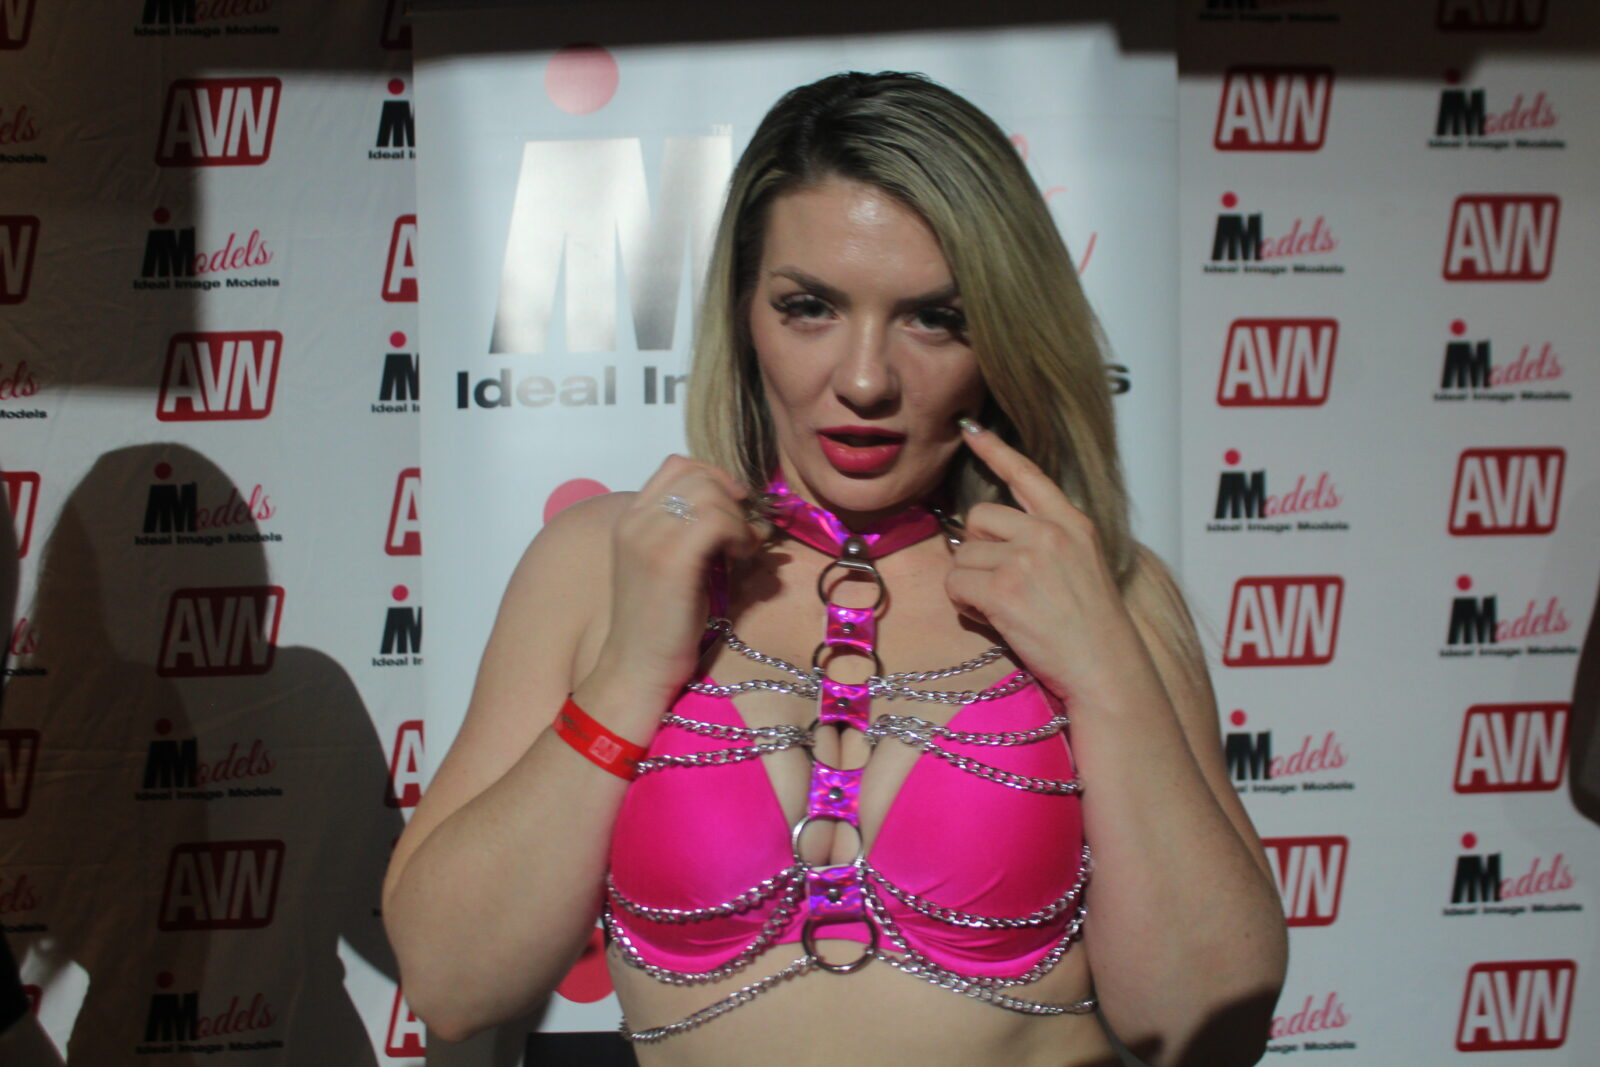 Emmy Demure at the AVN Expo 2019 in Las Vegas, NV.